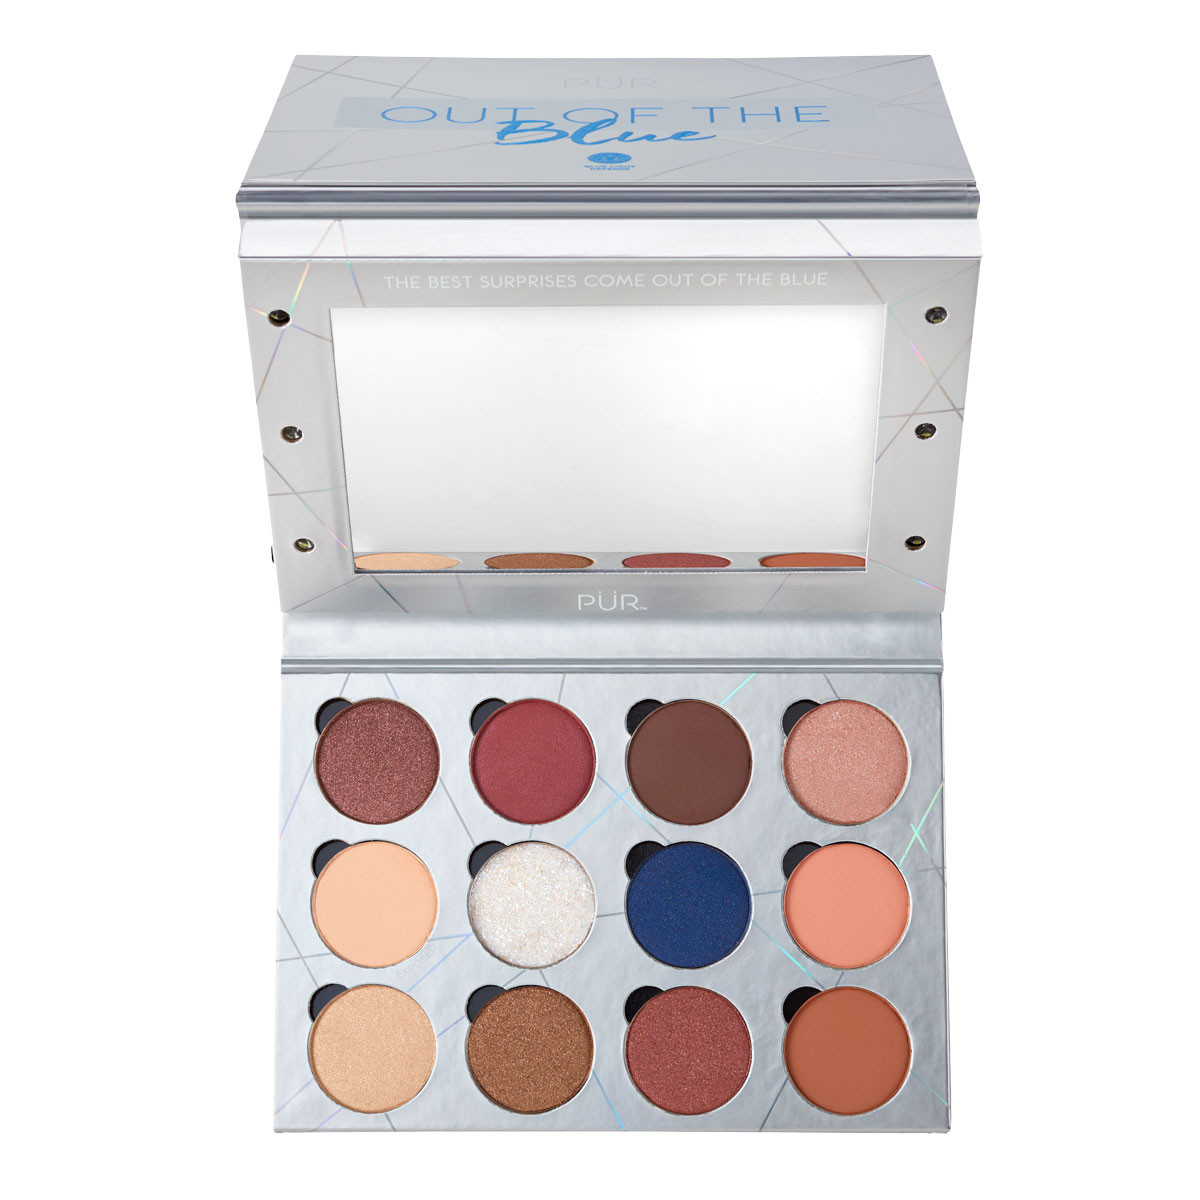 www.purcosmetics.com Out of the Blue Light Up Vanity Eyeshadow Palette